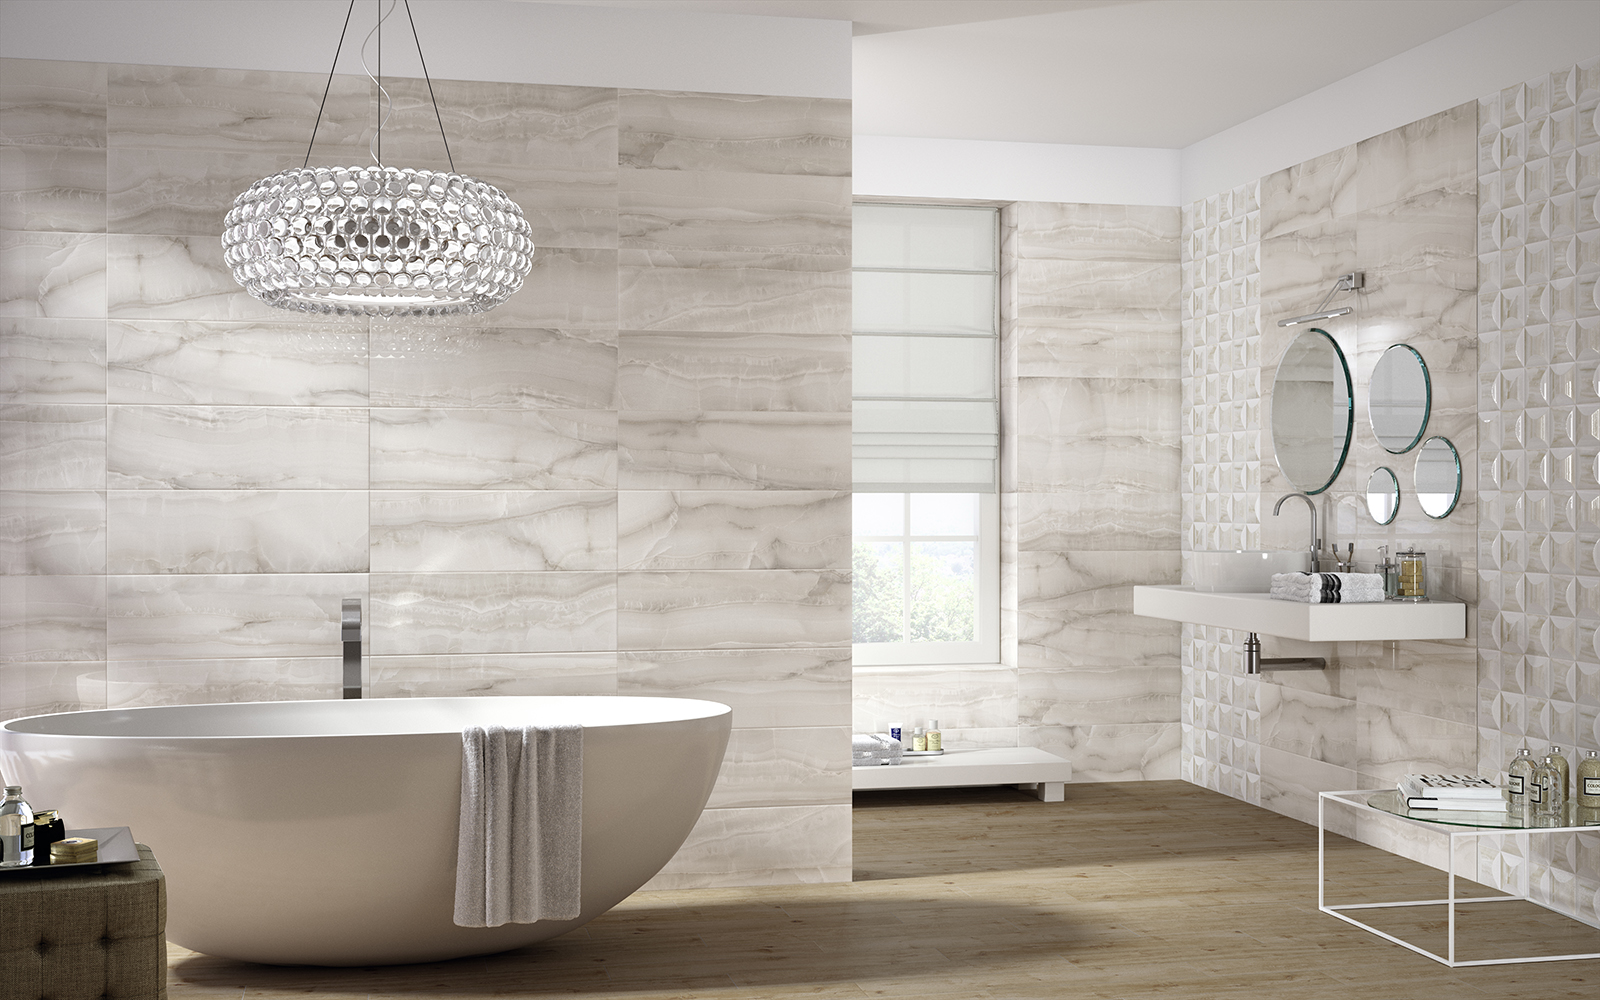 Azulejos Baño Marmol:Marazzi Porcelain Tile in Bathrooms